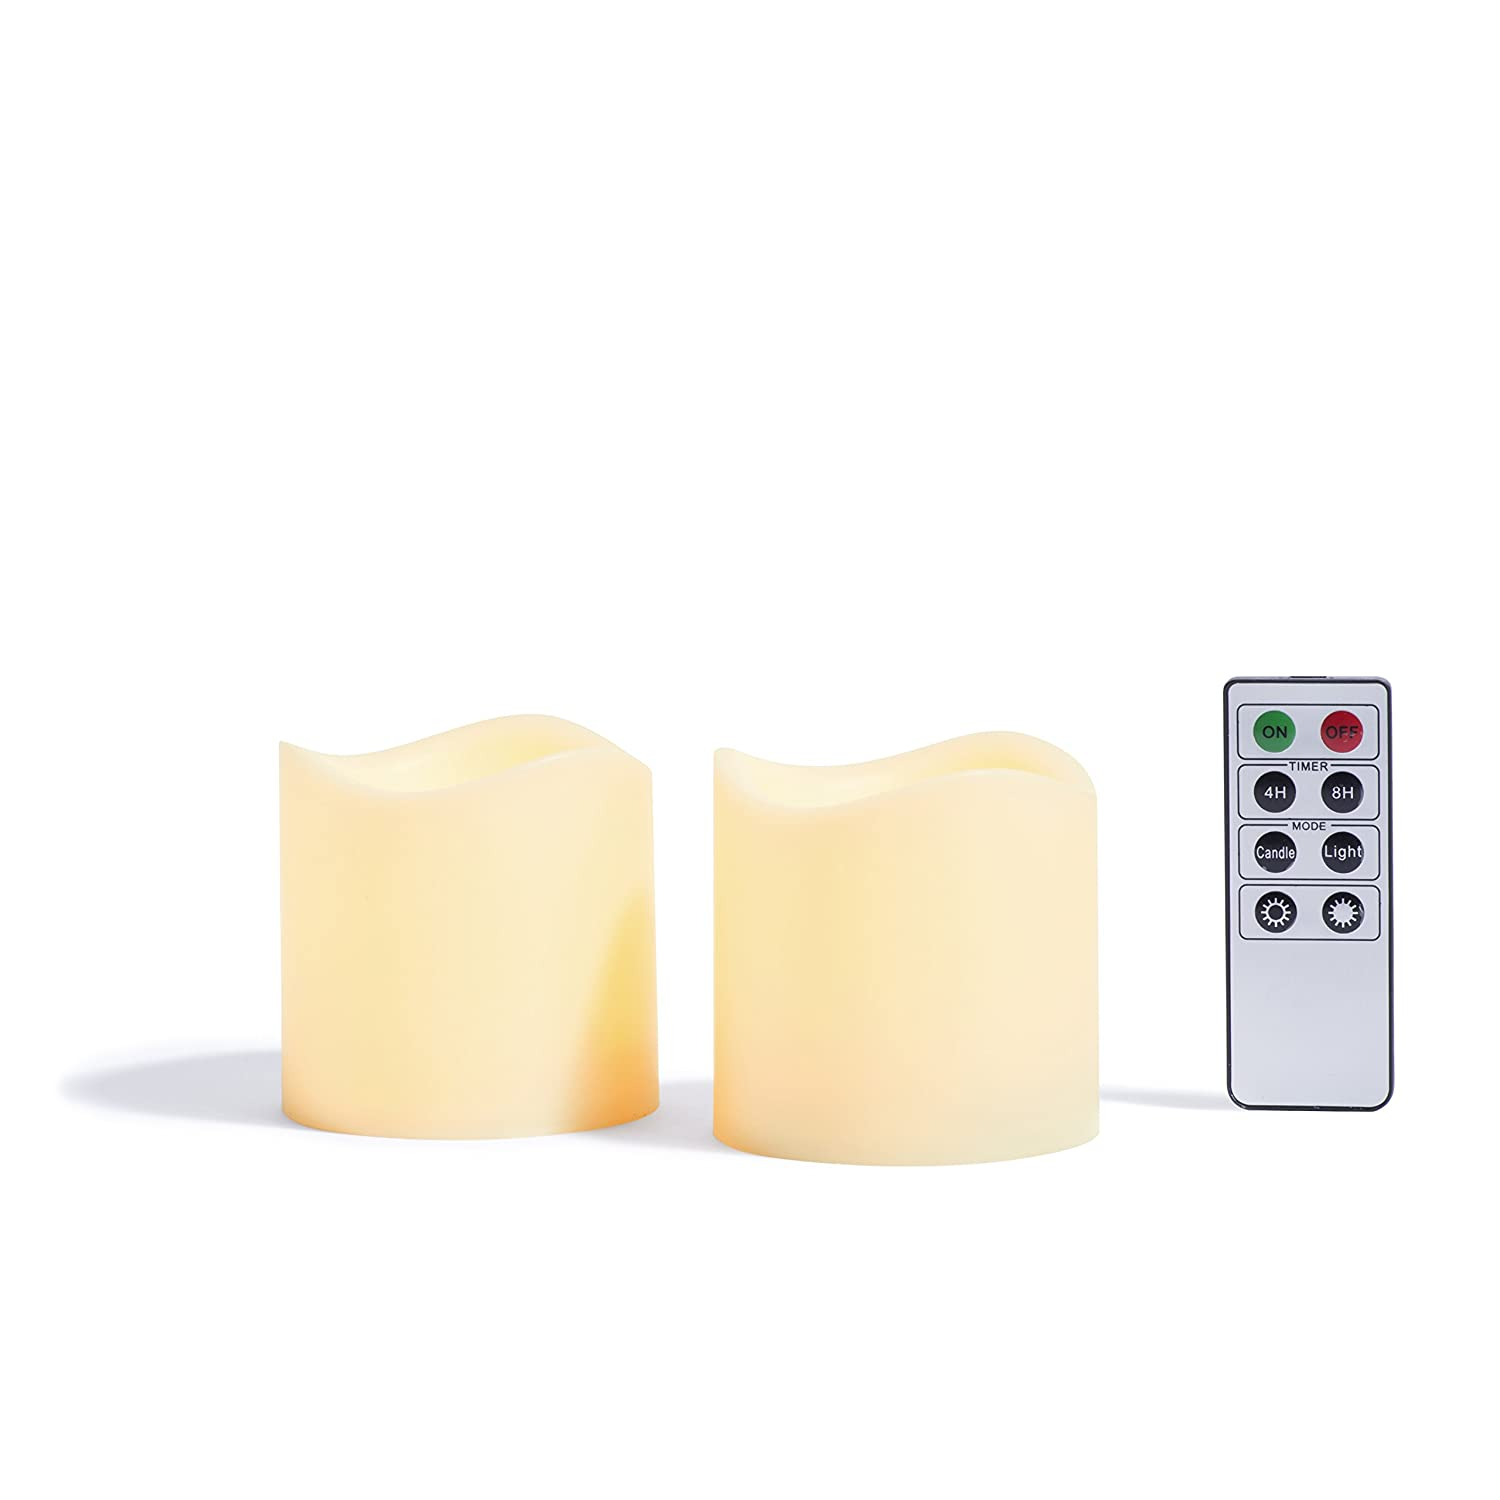 LampLust Indoor Outdoor Flameless Candles Set of 2 Warm White LED Glow Water Resistant Batteries Included 3 x 3 Decorative Candle Set